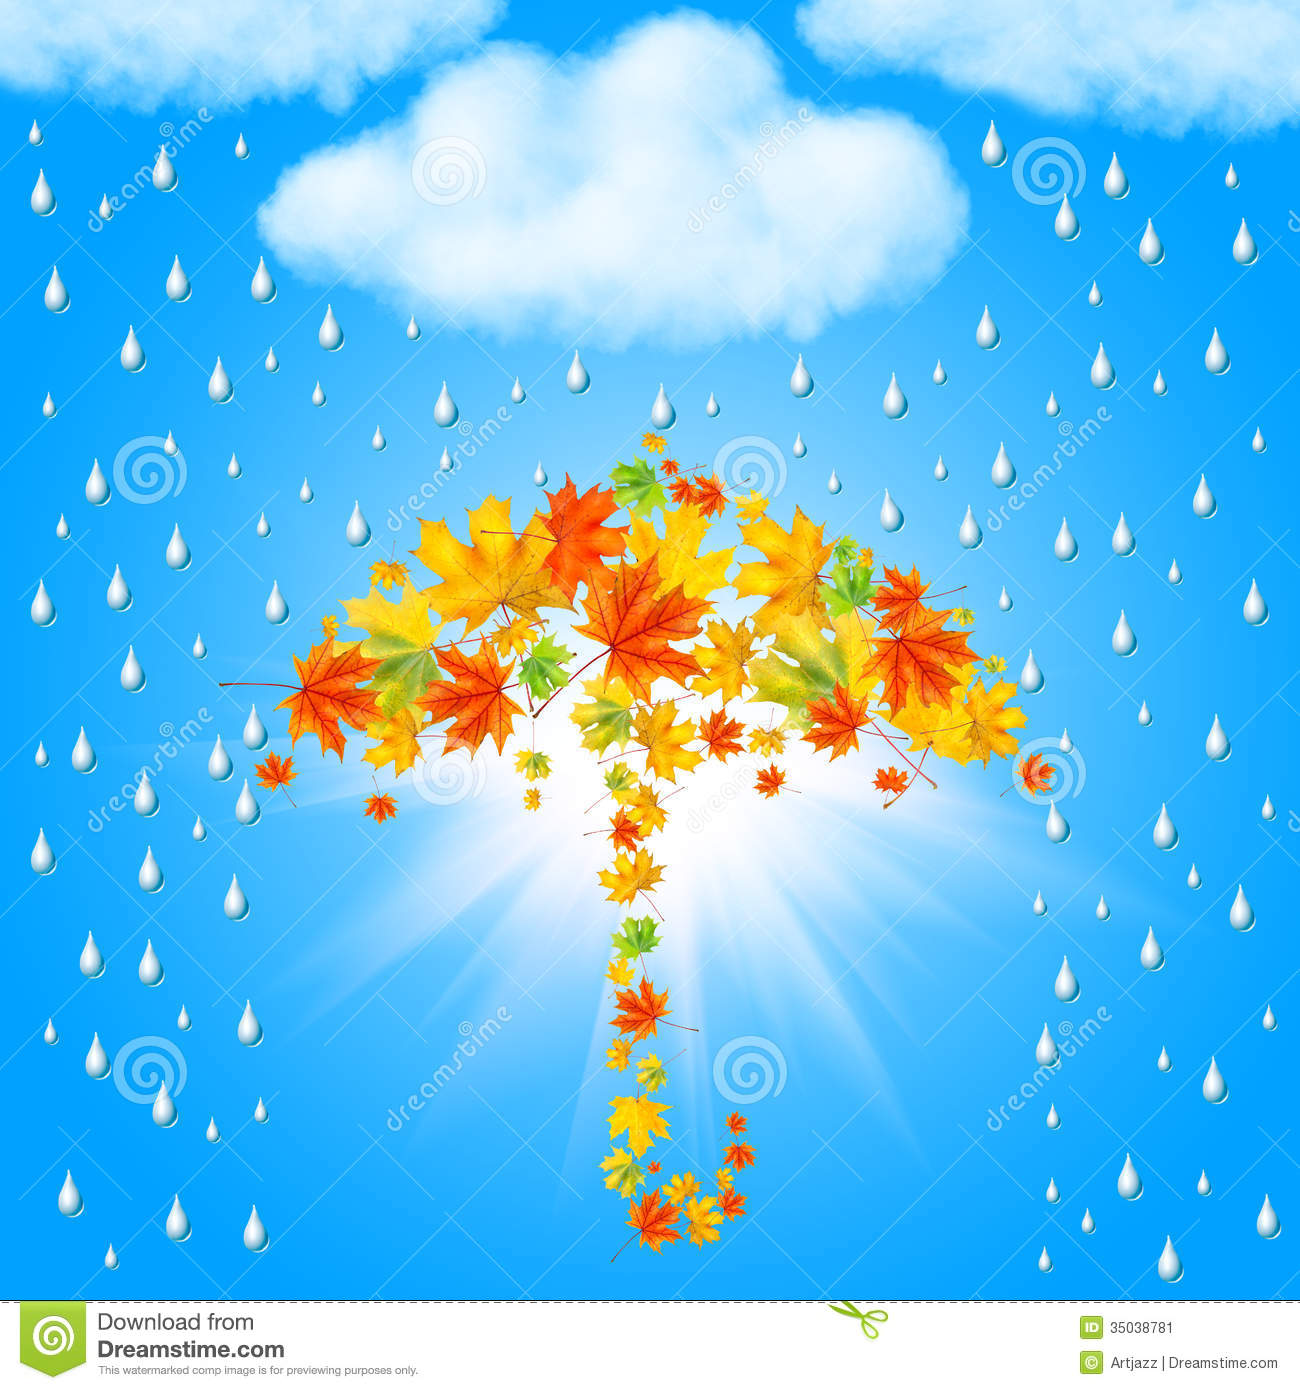 Tree With Leaves Falling Wallpaper Umbrella From Autumn Leaves Under Cloud And Rain Stock